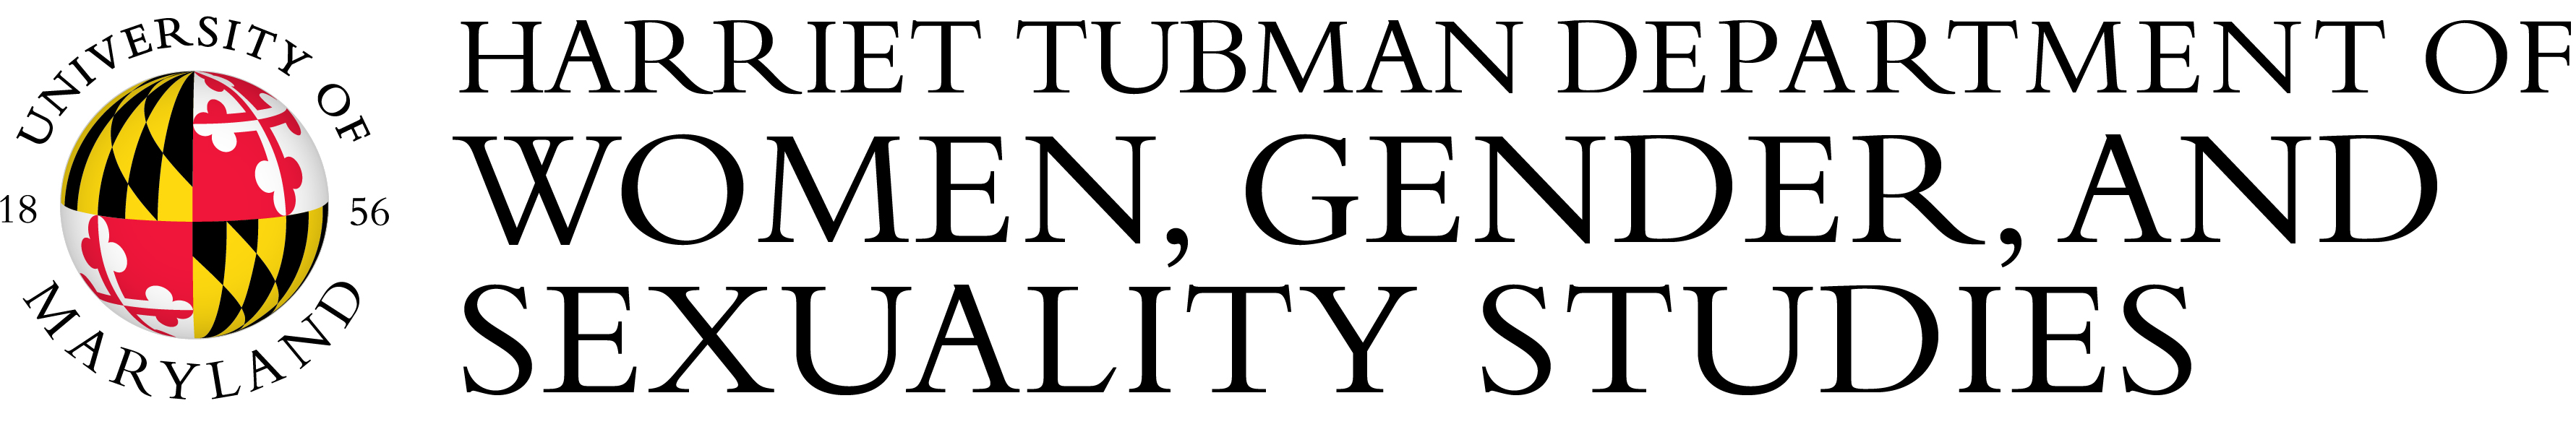 UMD The Harriet Tubman Department of Women, Gender, and Sexuality Studies Logo